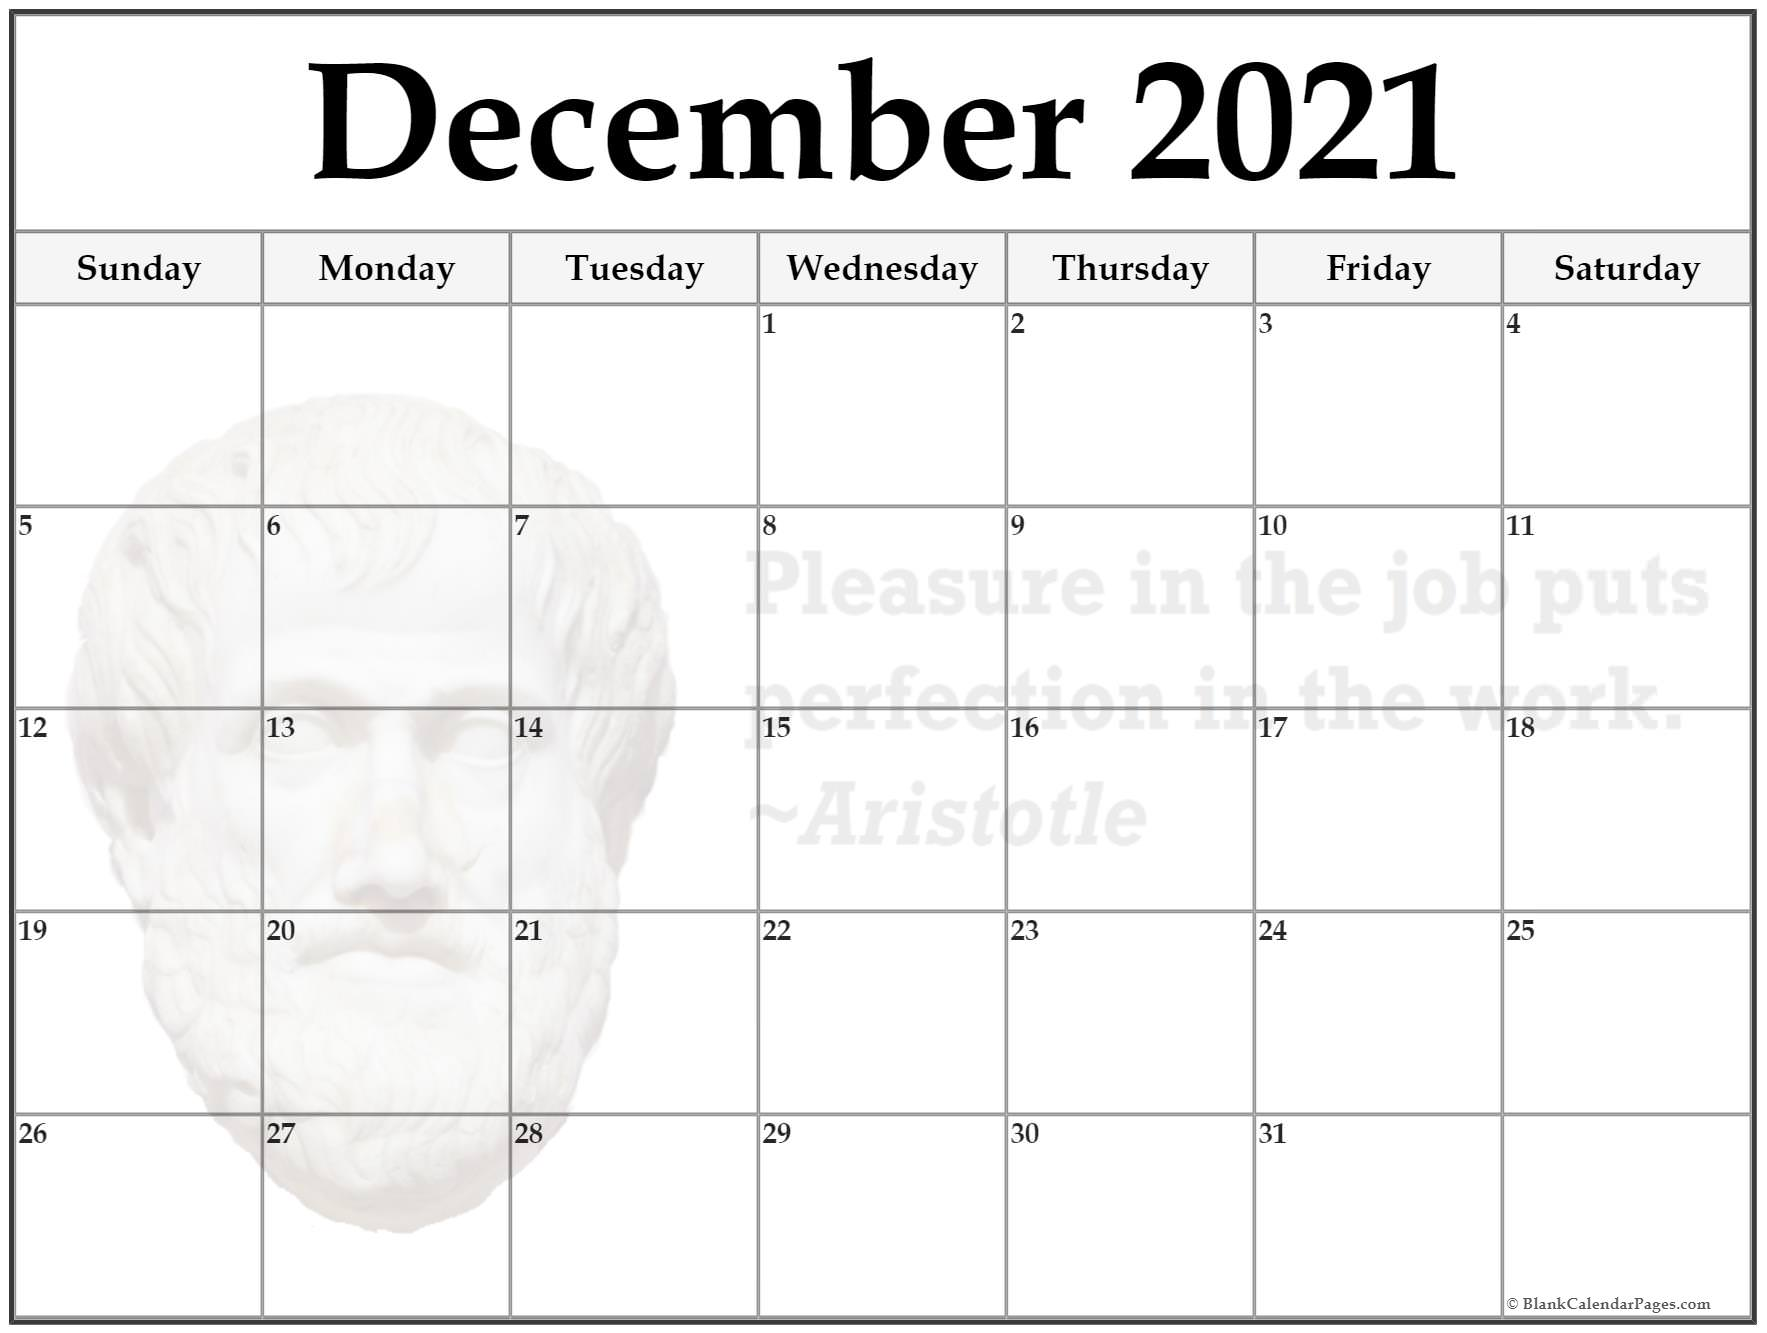 December calendar Pleasure in the job, puts perfection in the work ~Aristotle